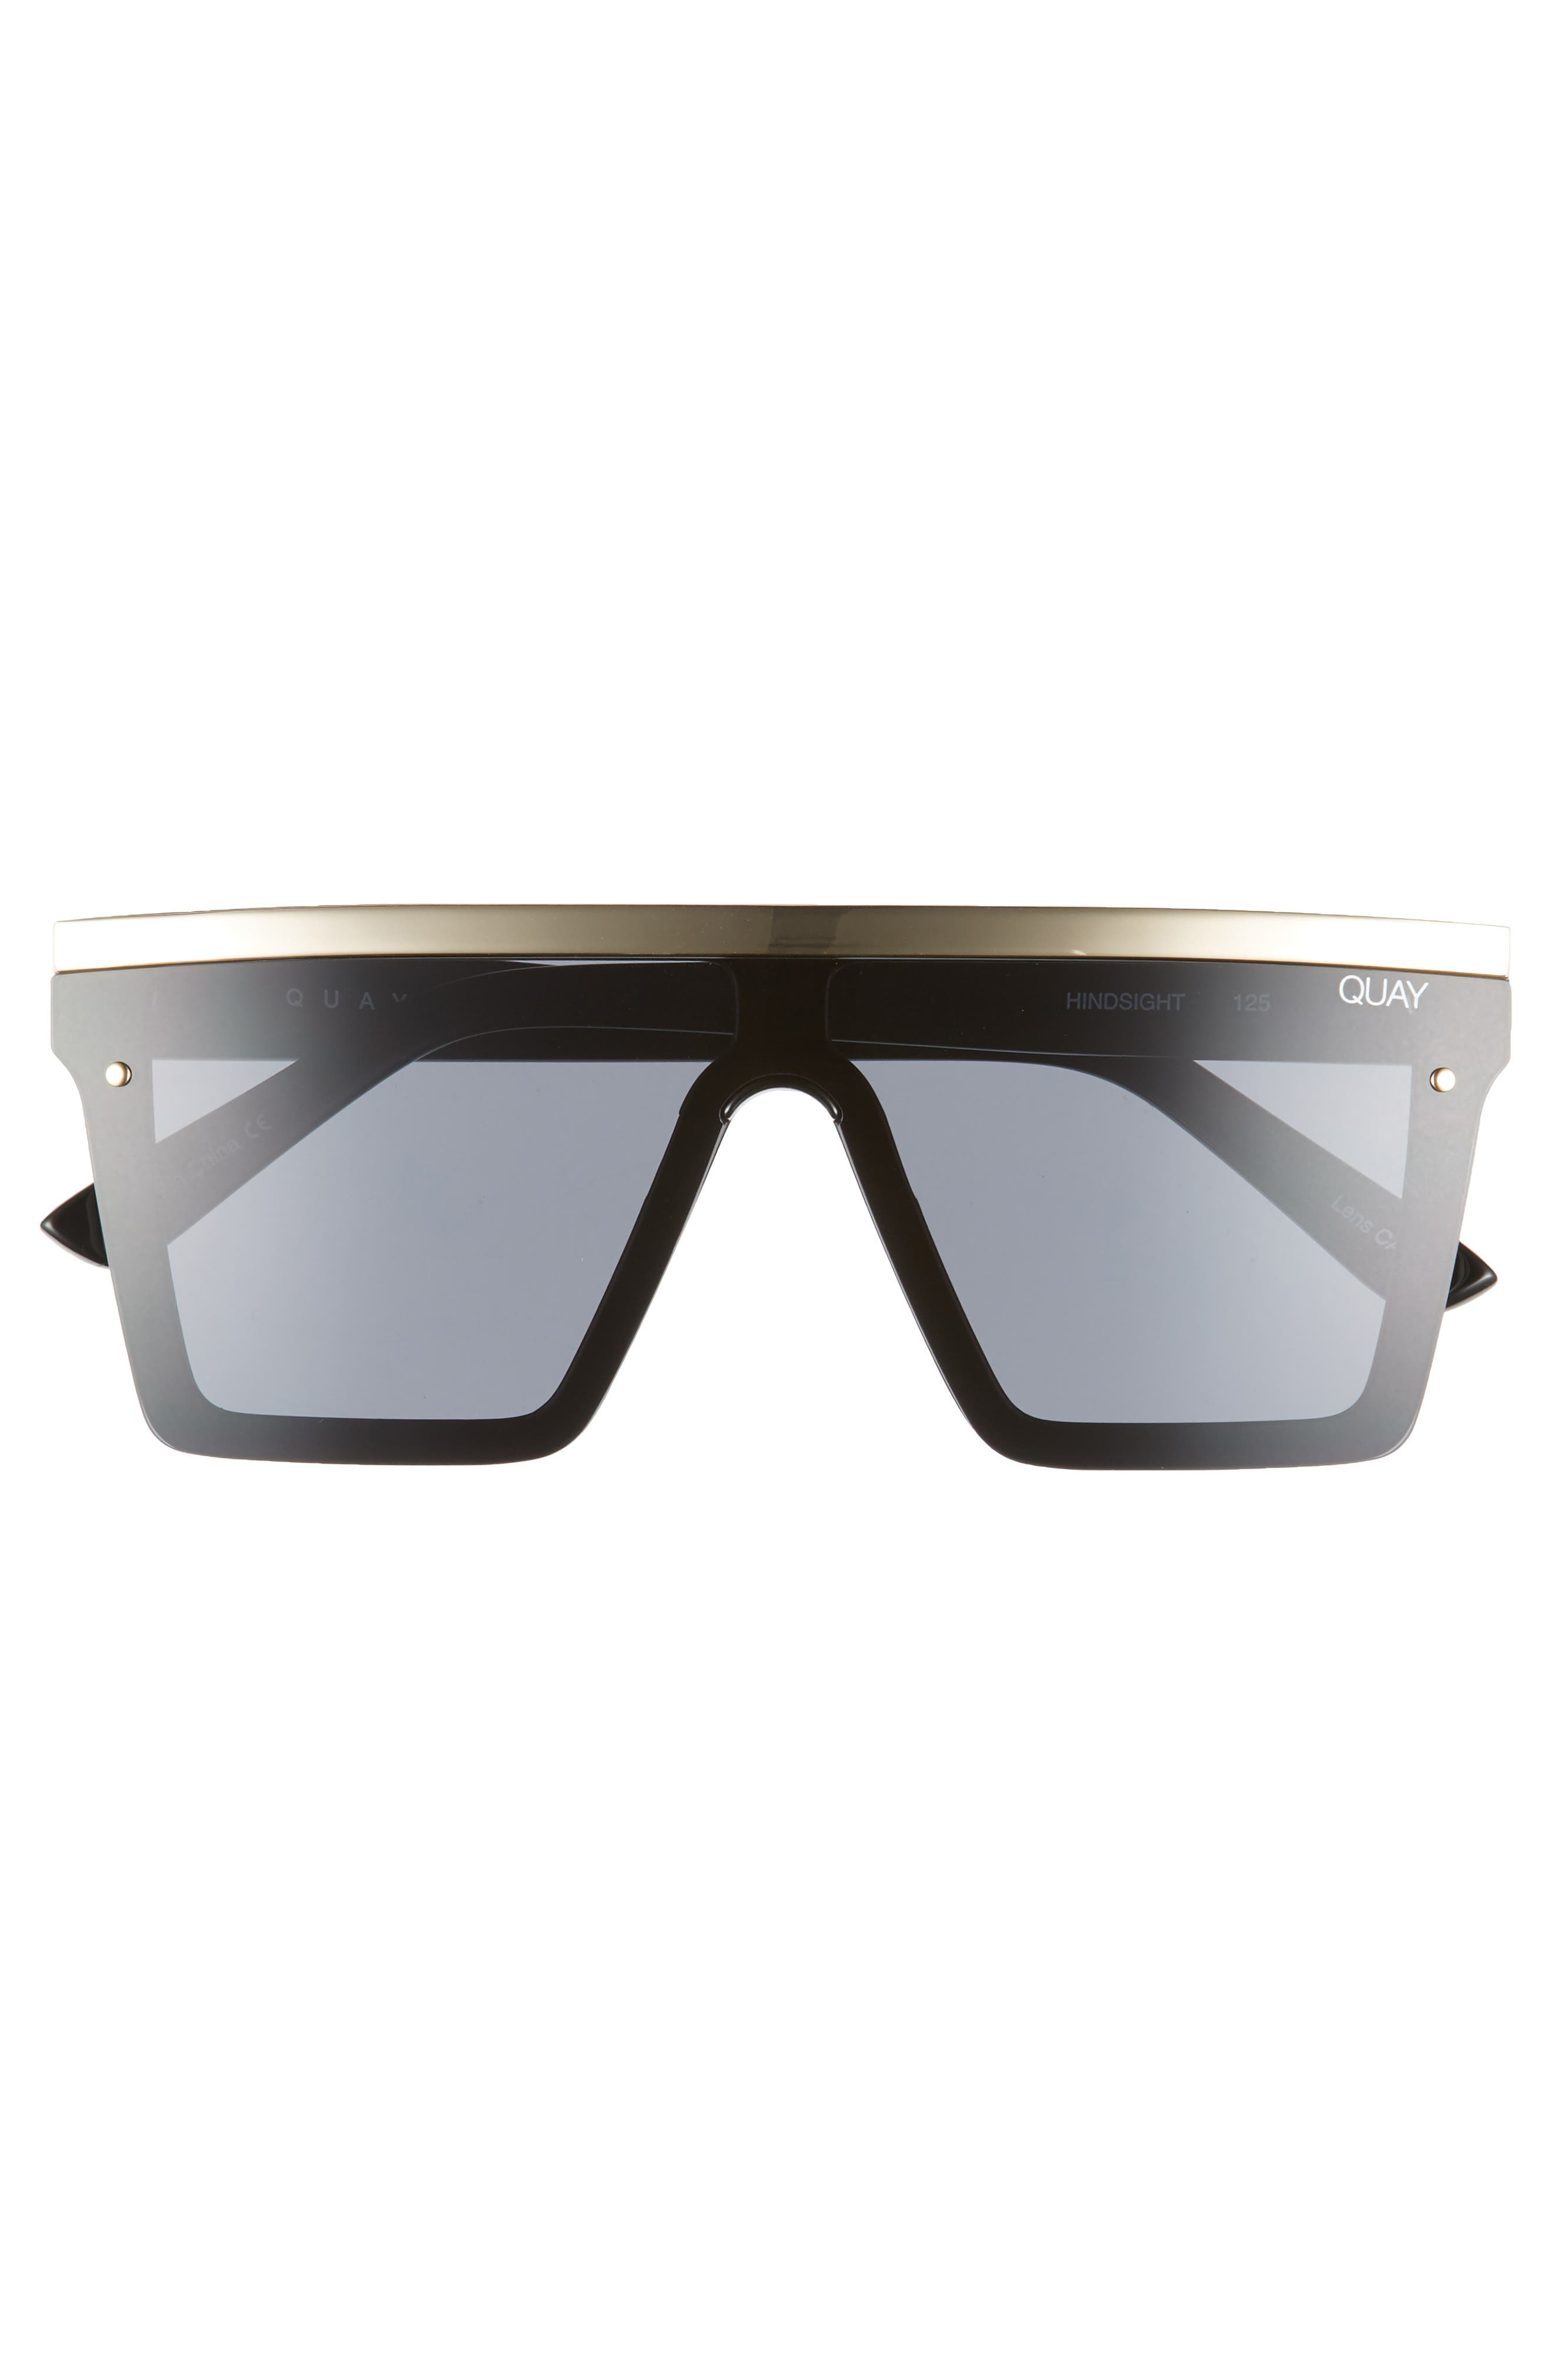 QUAY AUSTRALIA, Hindsight 150mm Shield Sunglasses, Alternate thumbnail 3, color, 005